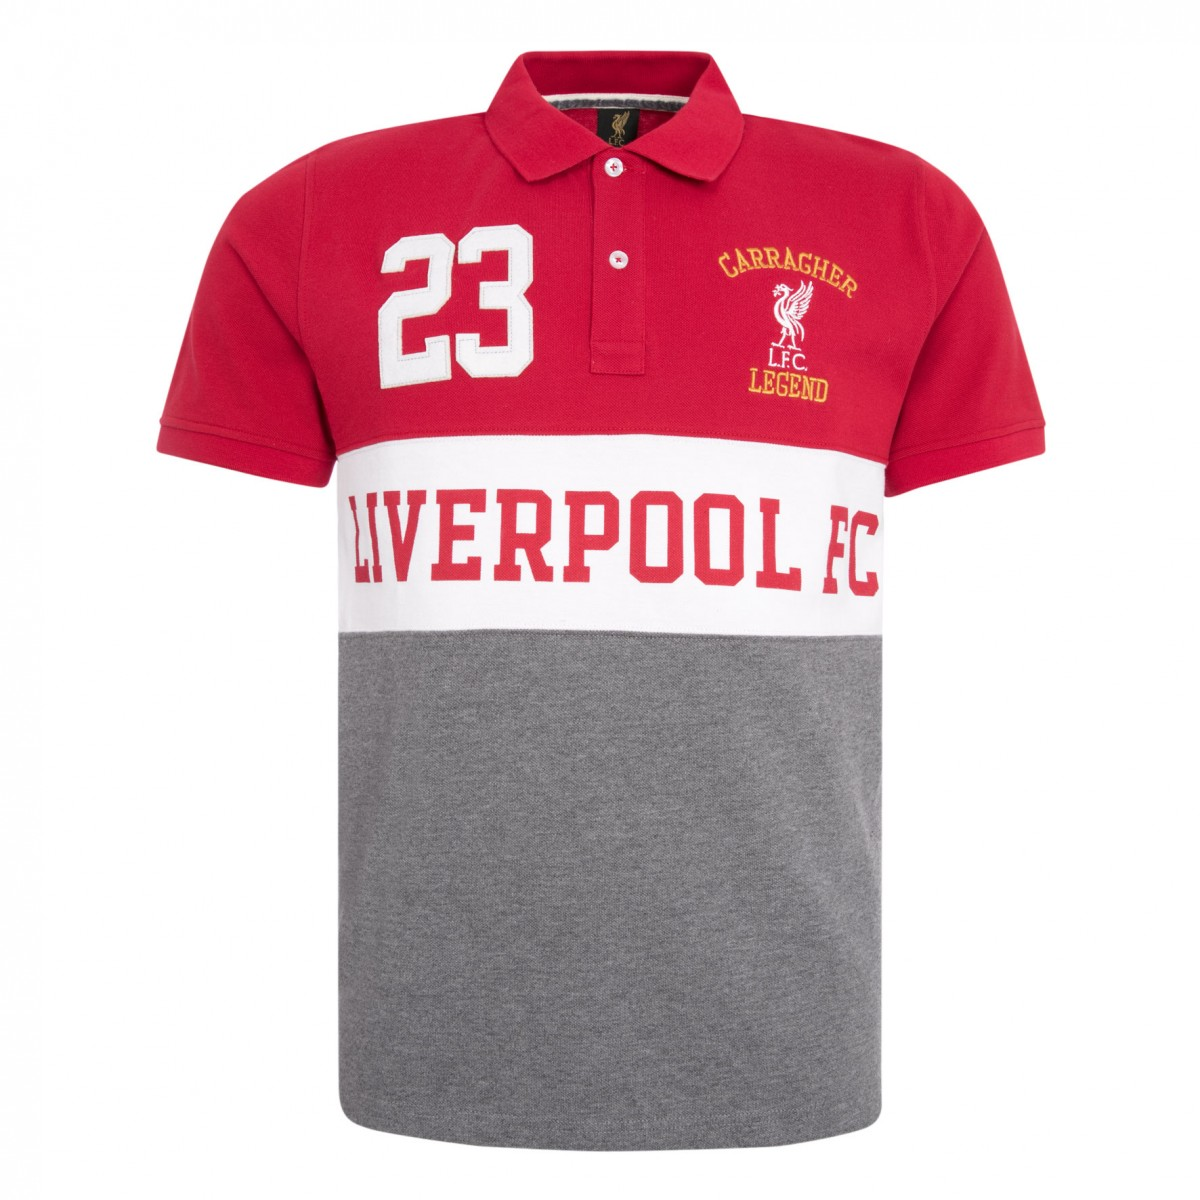 CARRAGHER POLO SHIRT